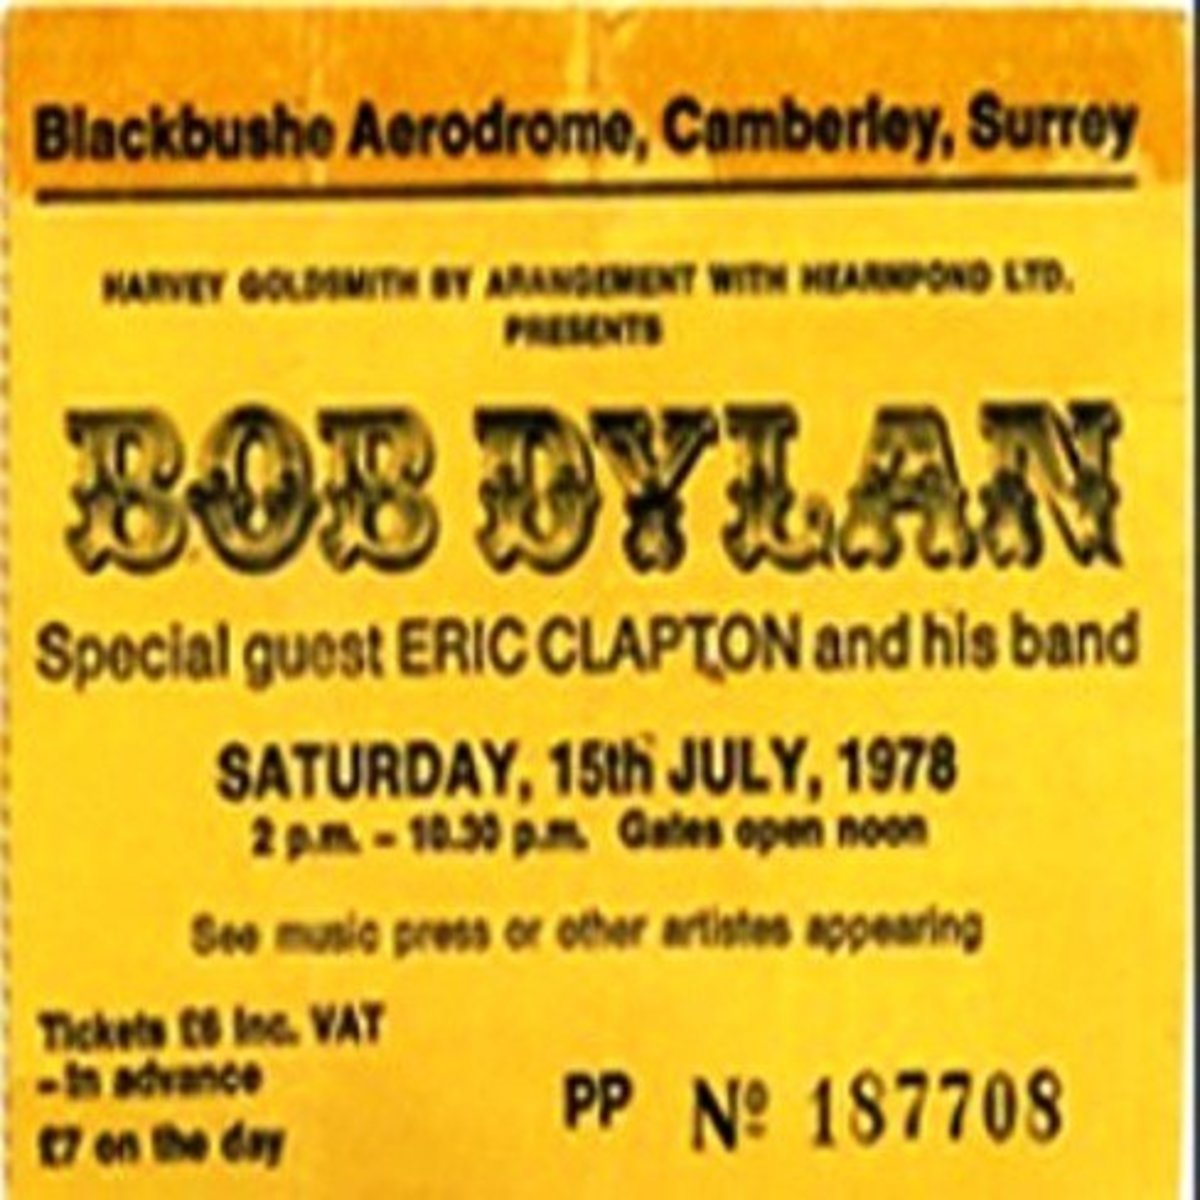 Although this is a ticket stub and not a complete ticket, it still has value - especially with the artist being Bob Dylan.